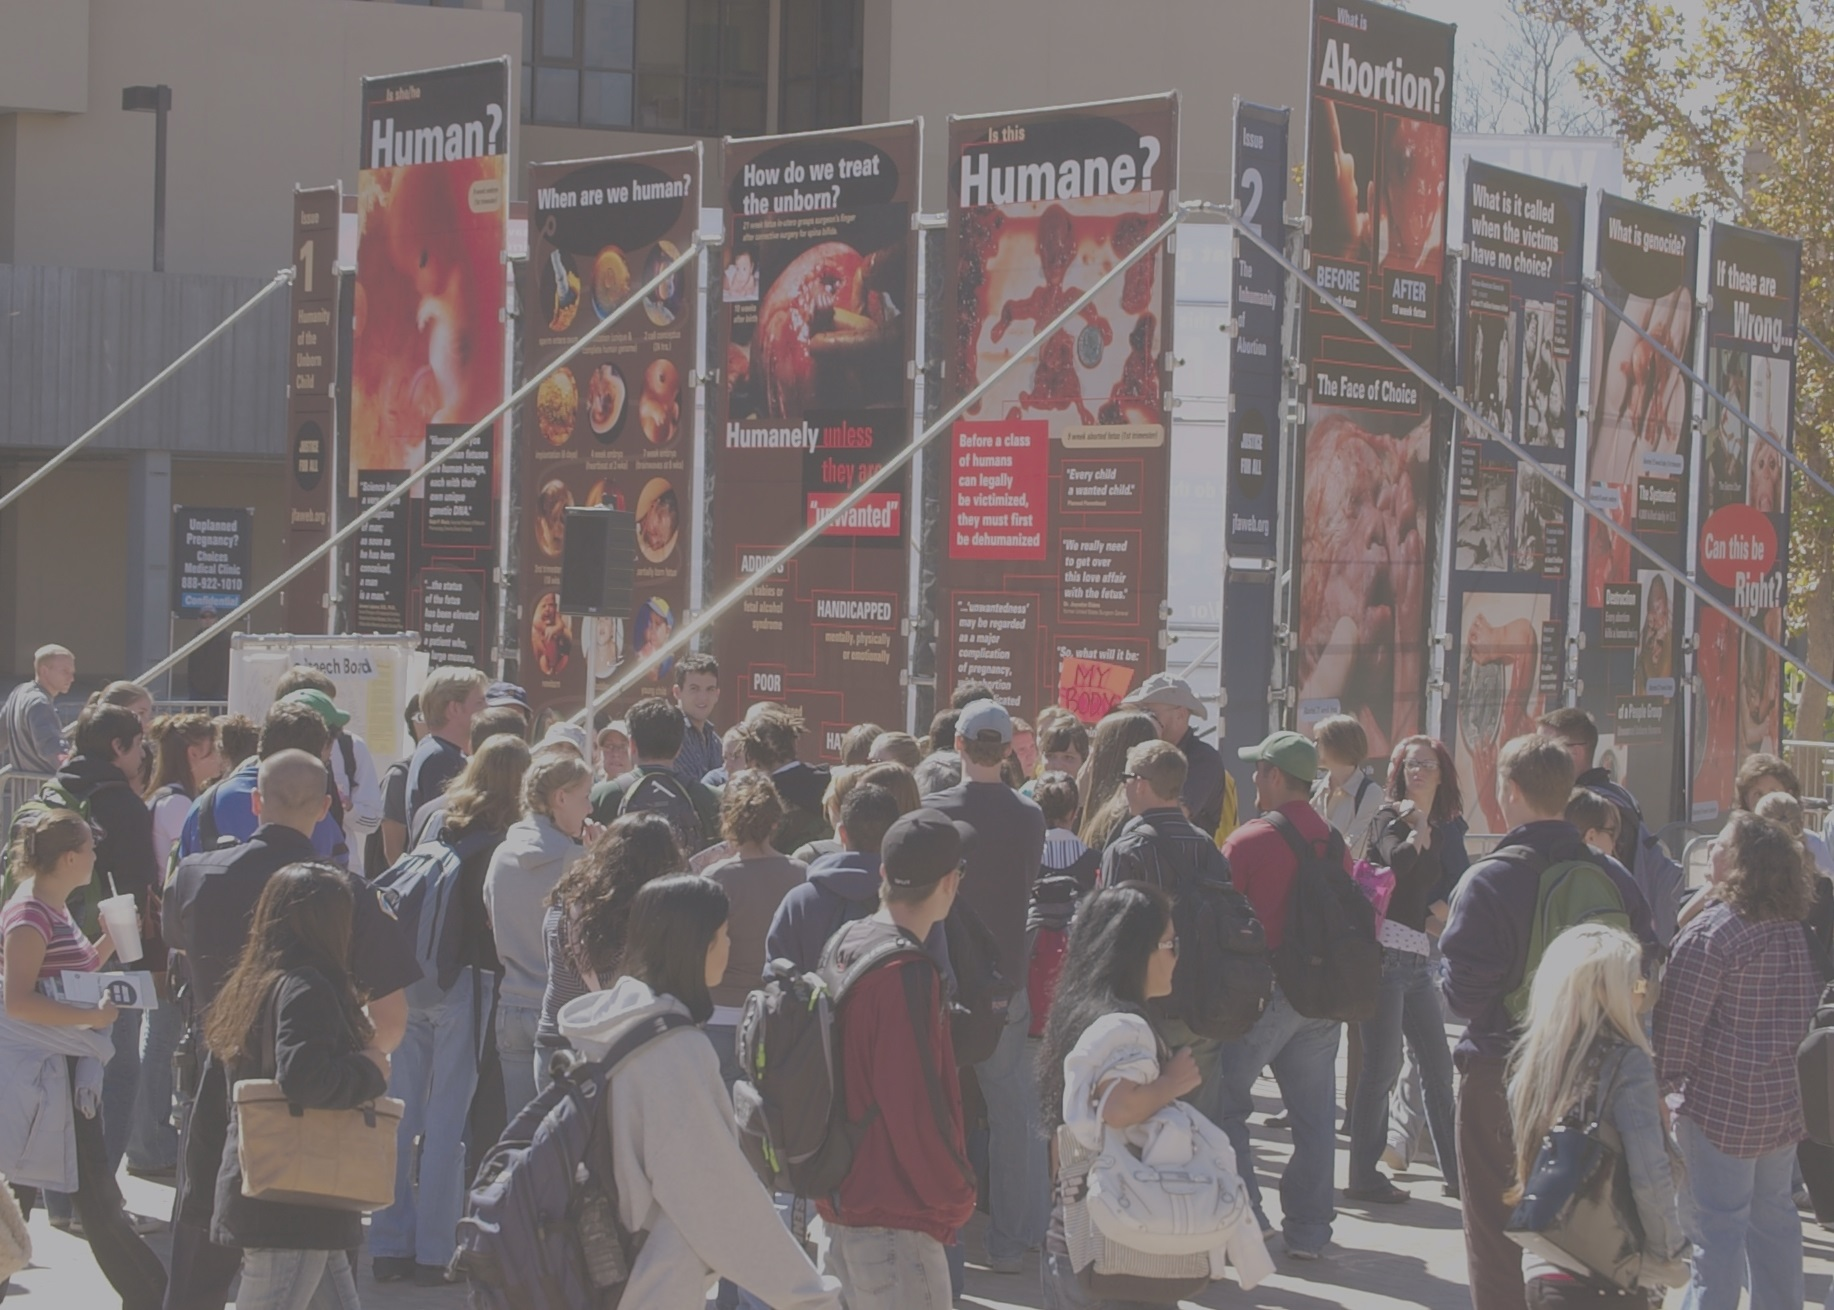 Justice For All's 2000 Exhibit creates controversy and conversation with pictures of the unborn before and after abortion at the University of New Mexico in 2006. Click the image or  this link  to see the Exhibit.